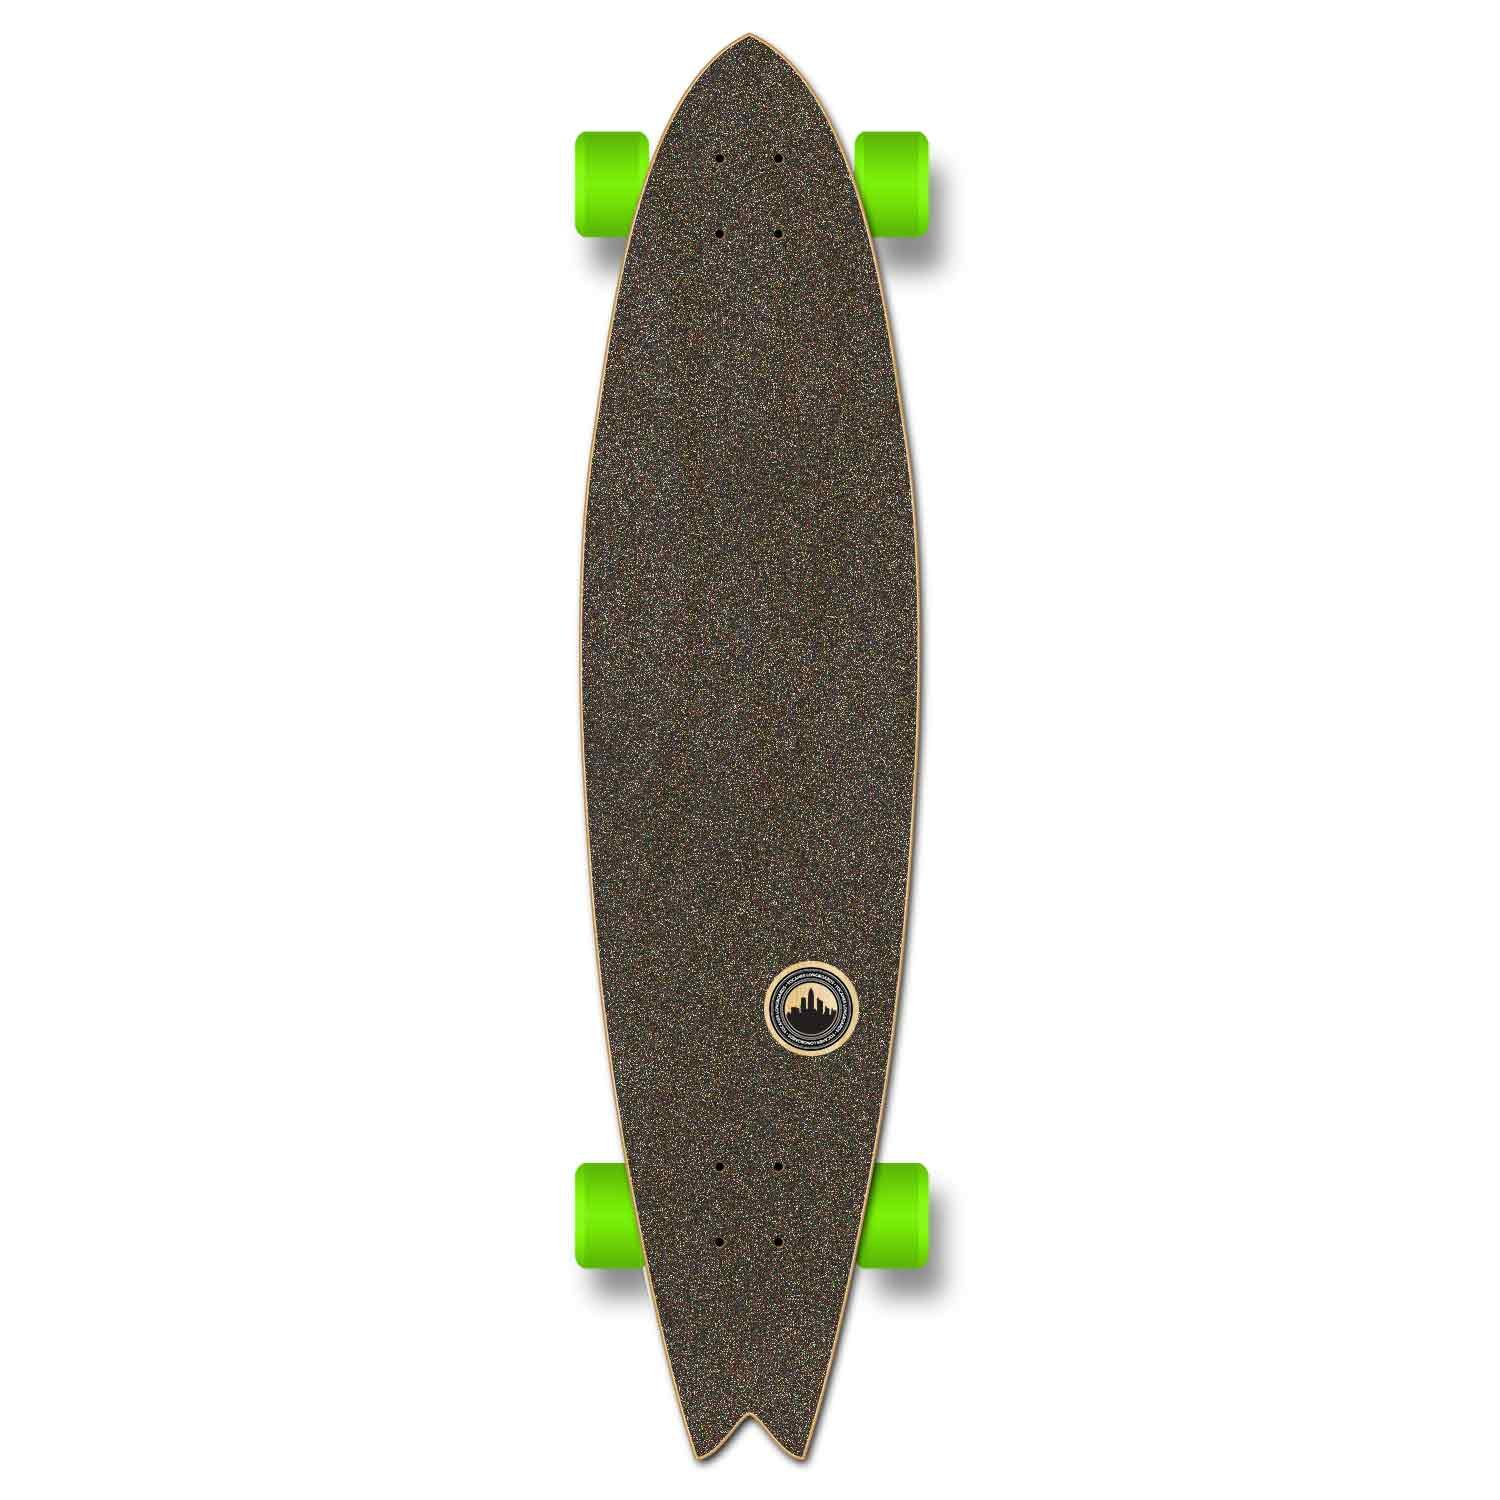 Yocaher VW Vibe Beach Series Skateboard Longboard Complete Cruiser – Available in Drop Down, Lowrider, Drop Through, Pintail, Kicktail, Fishtail, and Old School and Skateboard